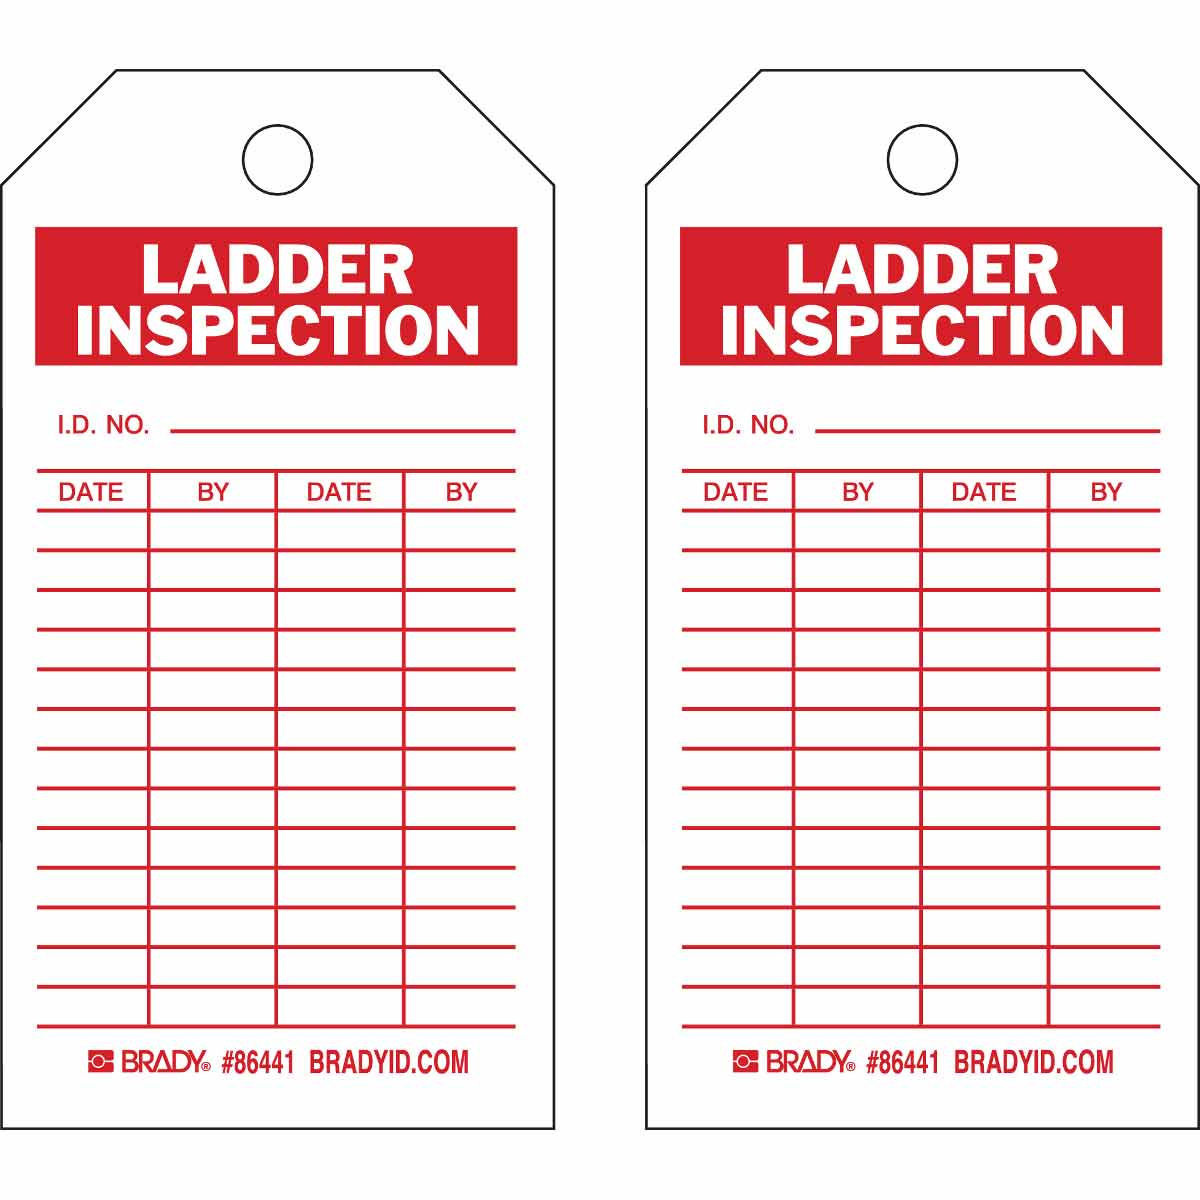 Brady Part 86441 Inspection Material Control Tags Ladder